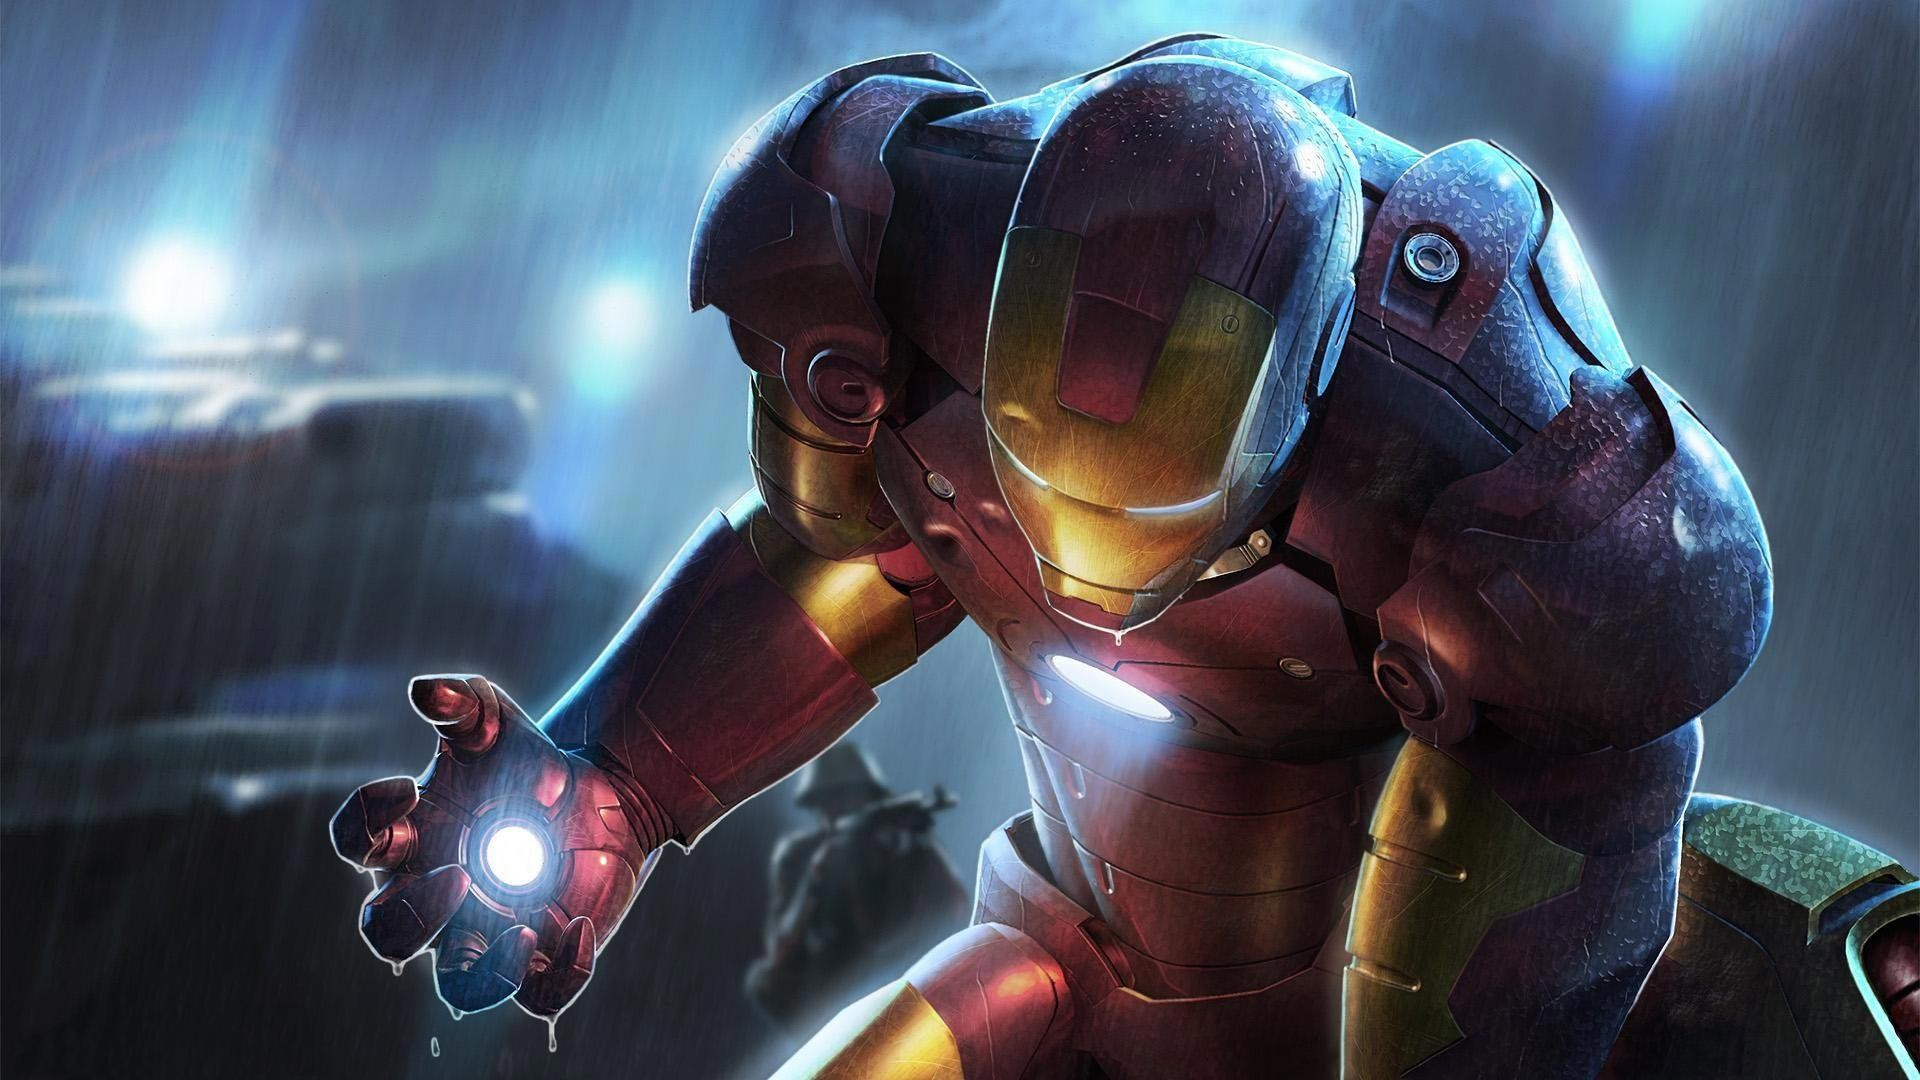 1920x1080 Free <b>Superhero Wallpapers</b> - <b>Wallpaper<